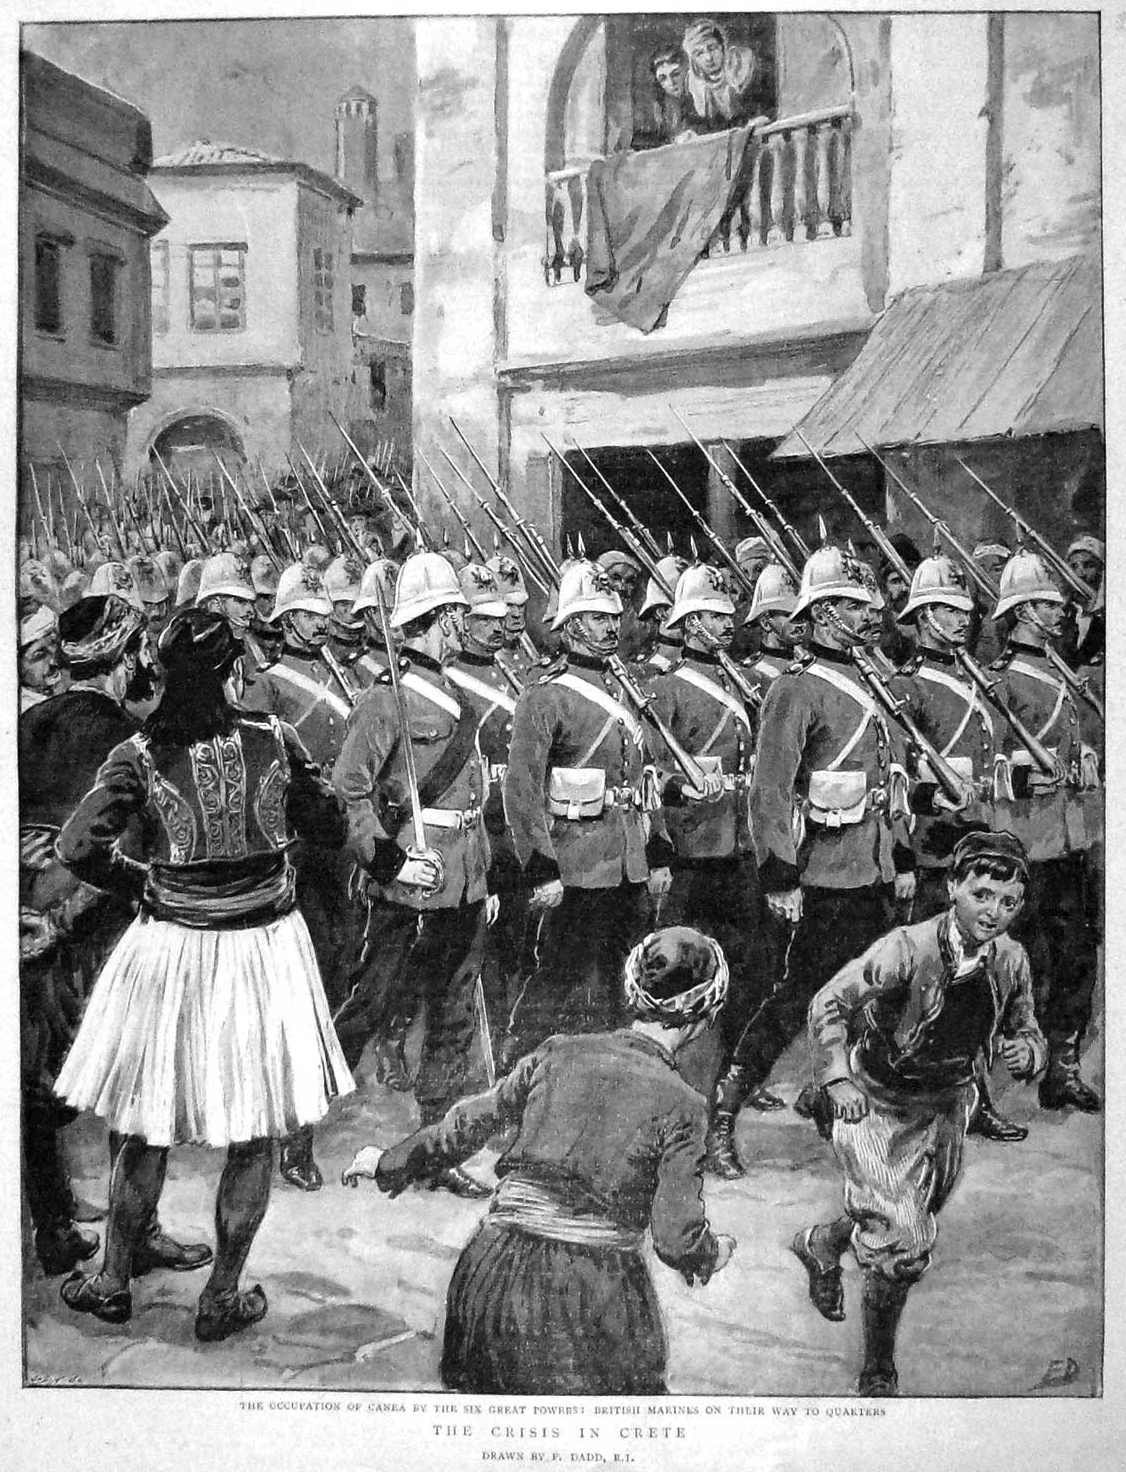 British Royal Marines parade in the streets of Chania in Crete following the occupation of the island by the Great Powers in spring 1897.